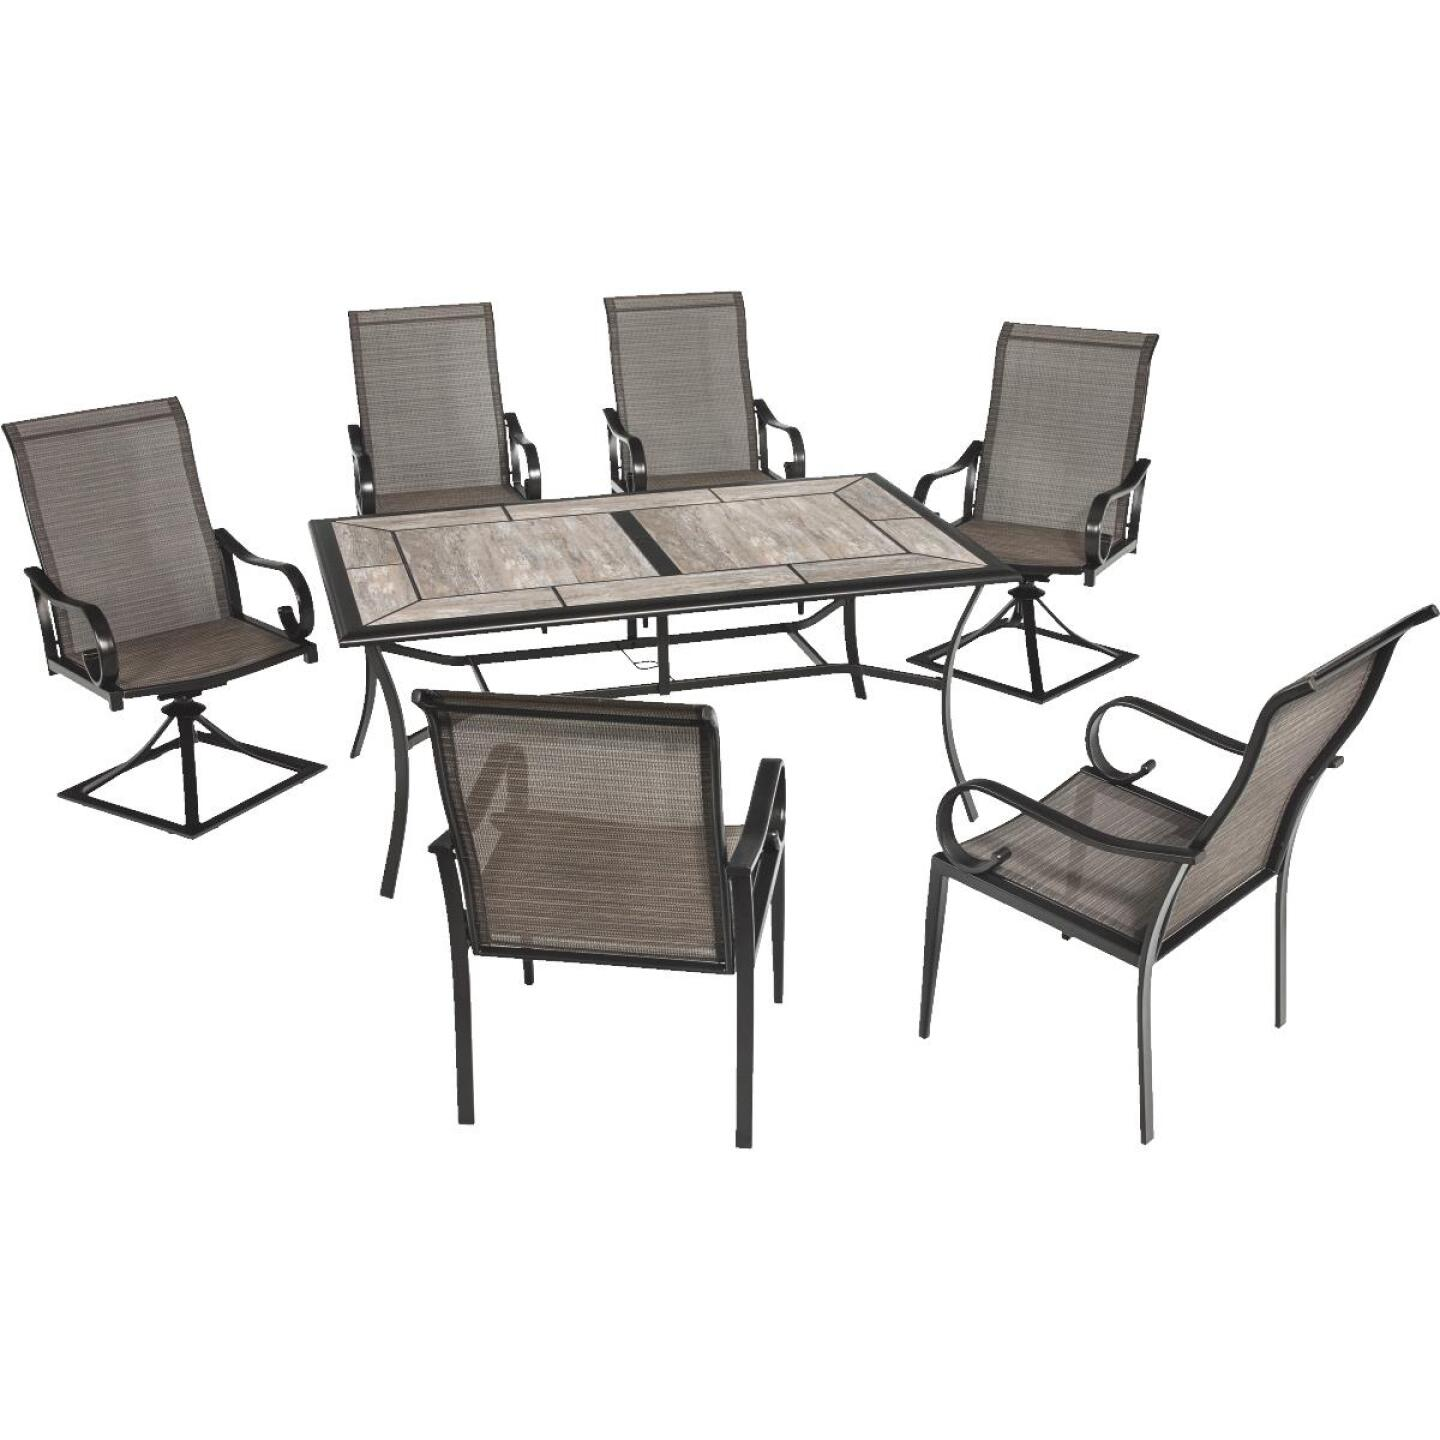 Outdoor Expressions Berkshire 7-Piece Dining Set Image 61